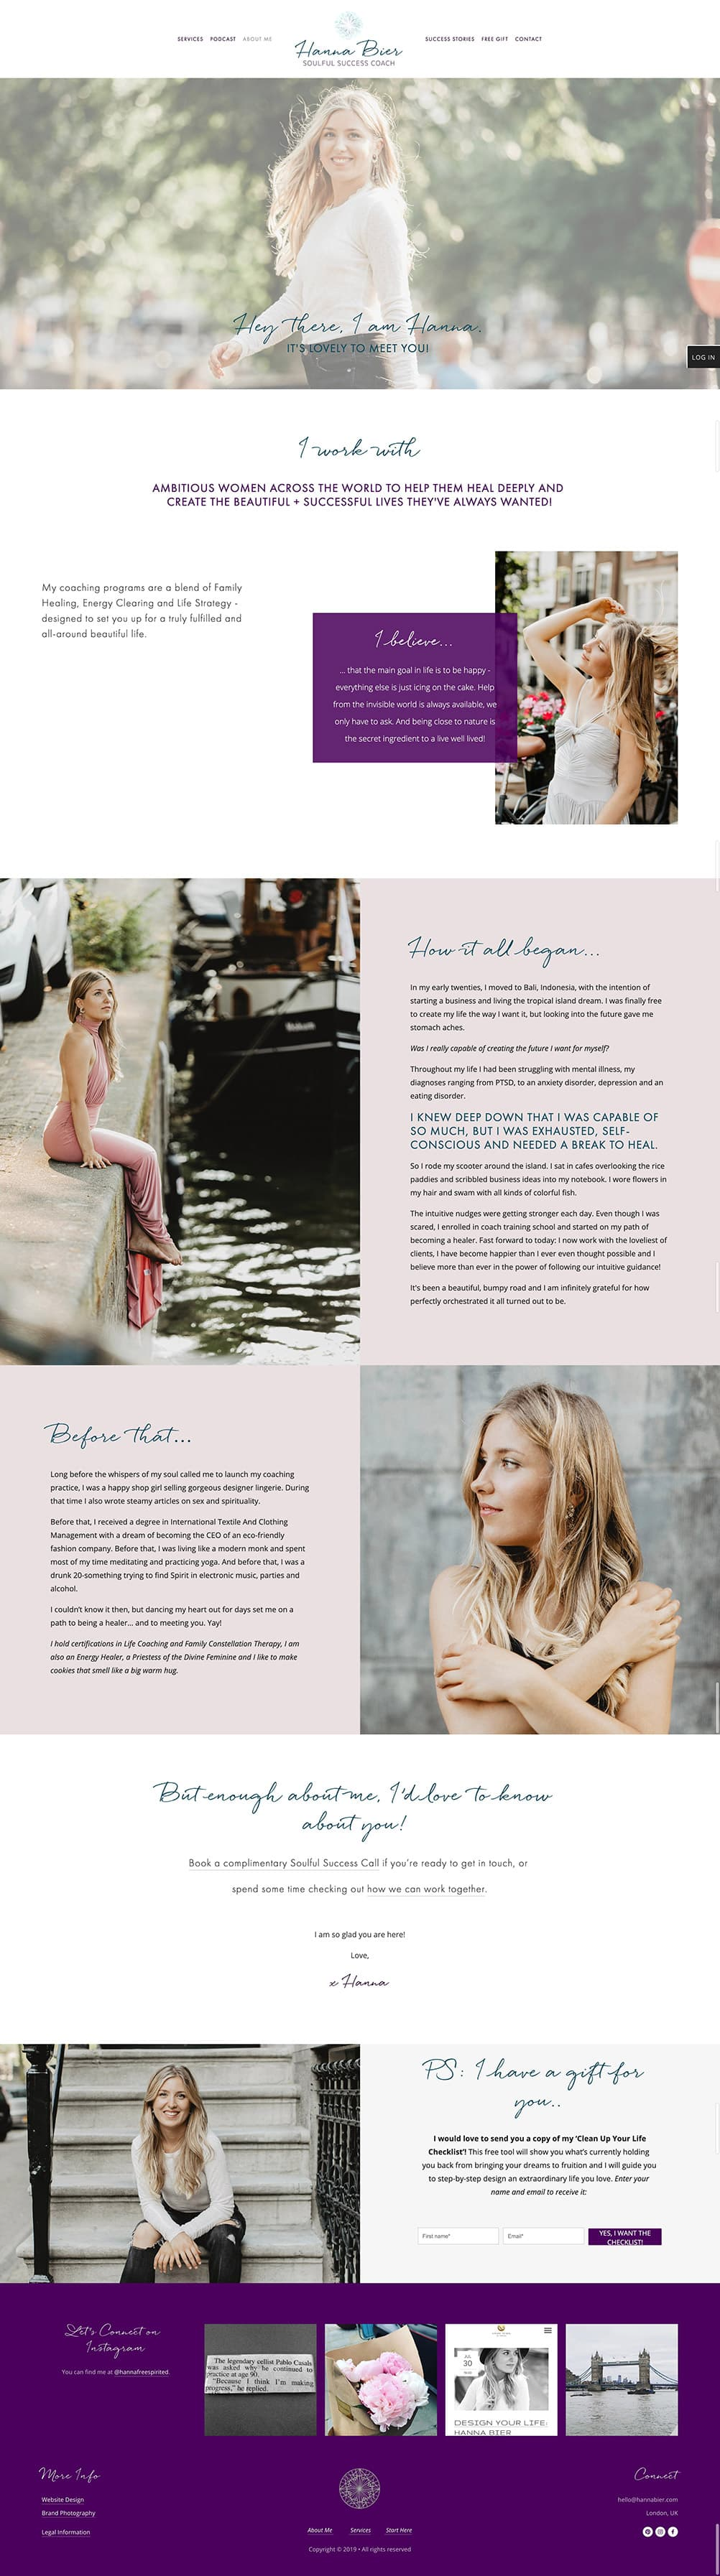 Hanna Bier About page | gorgeous About page design | Squarespace webdesign by Jodi Neufeld Design #squarespace #coaching #website #webdesign